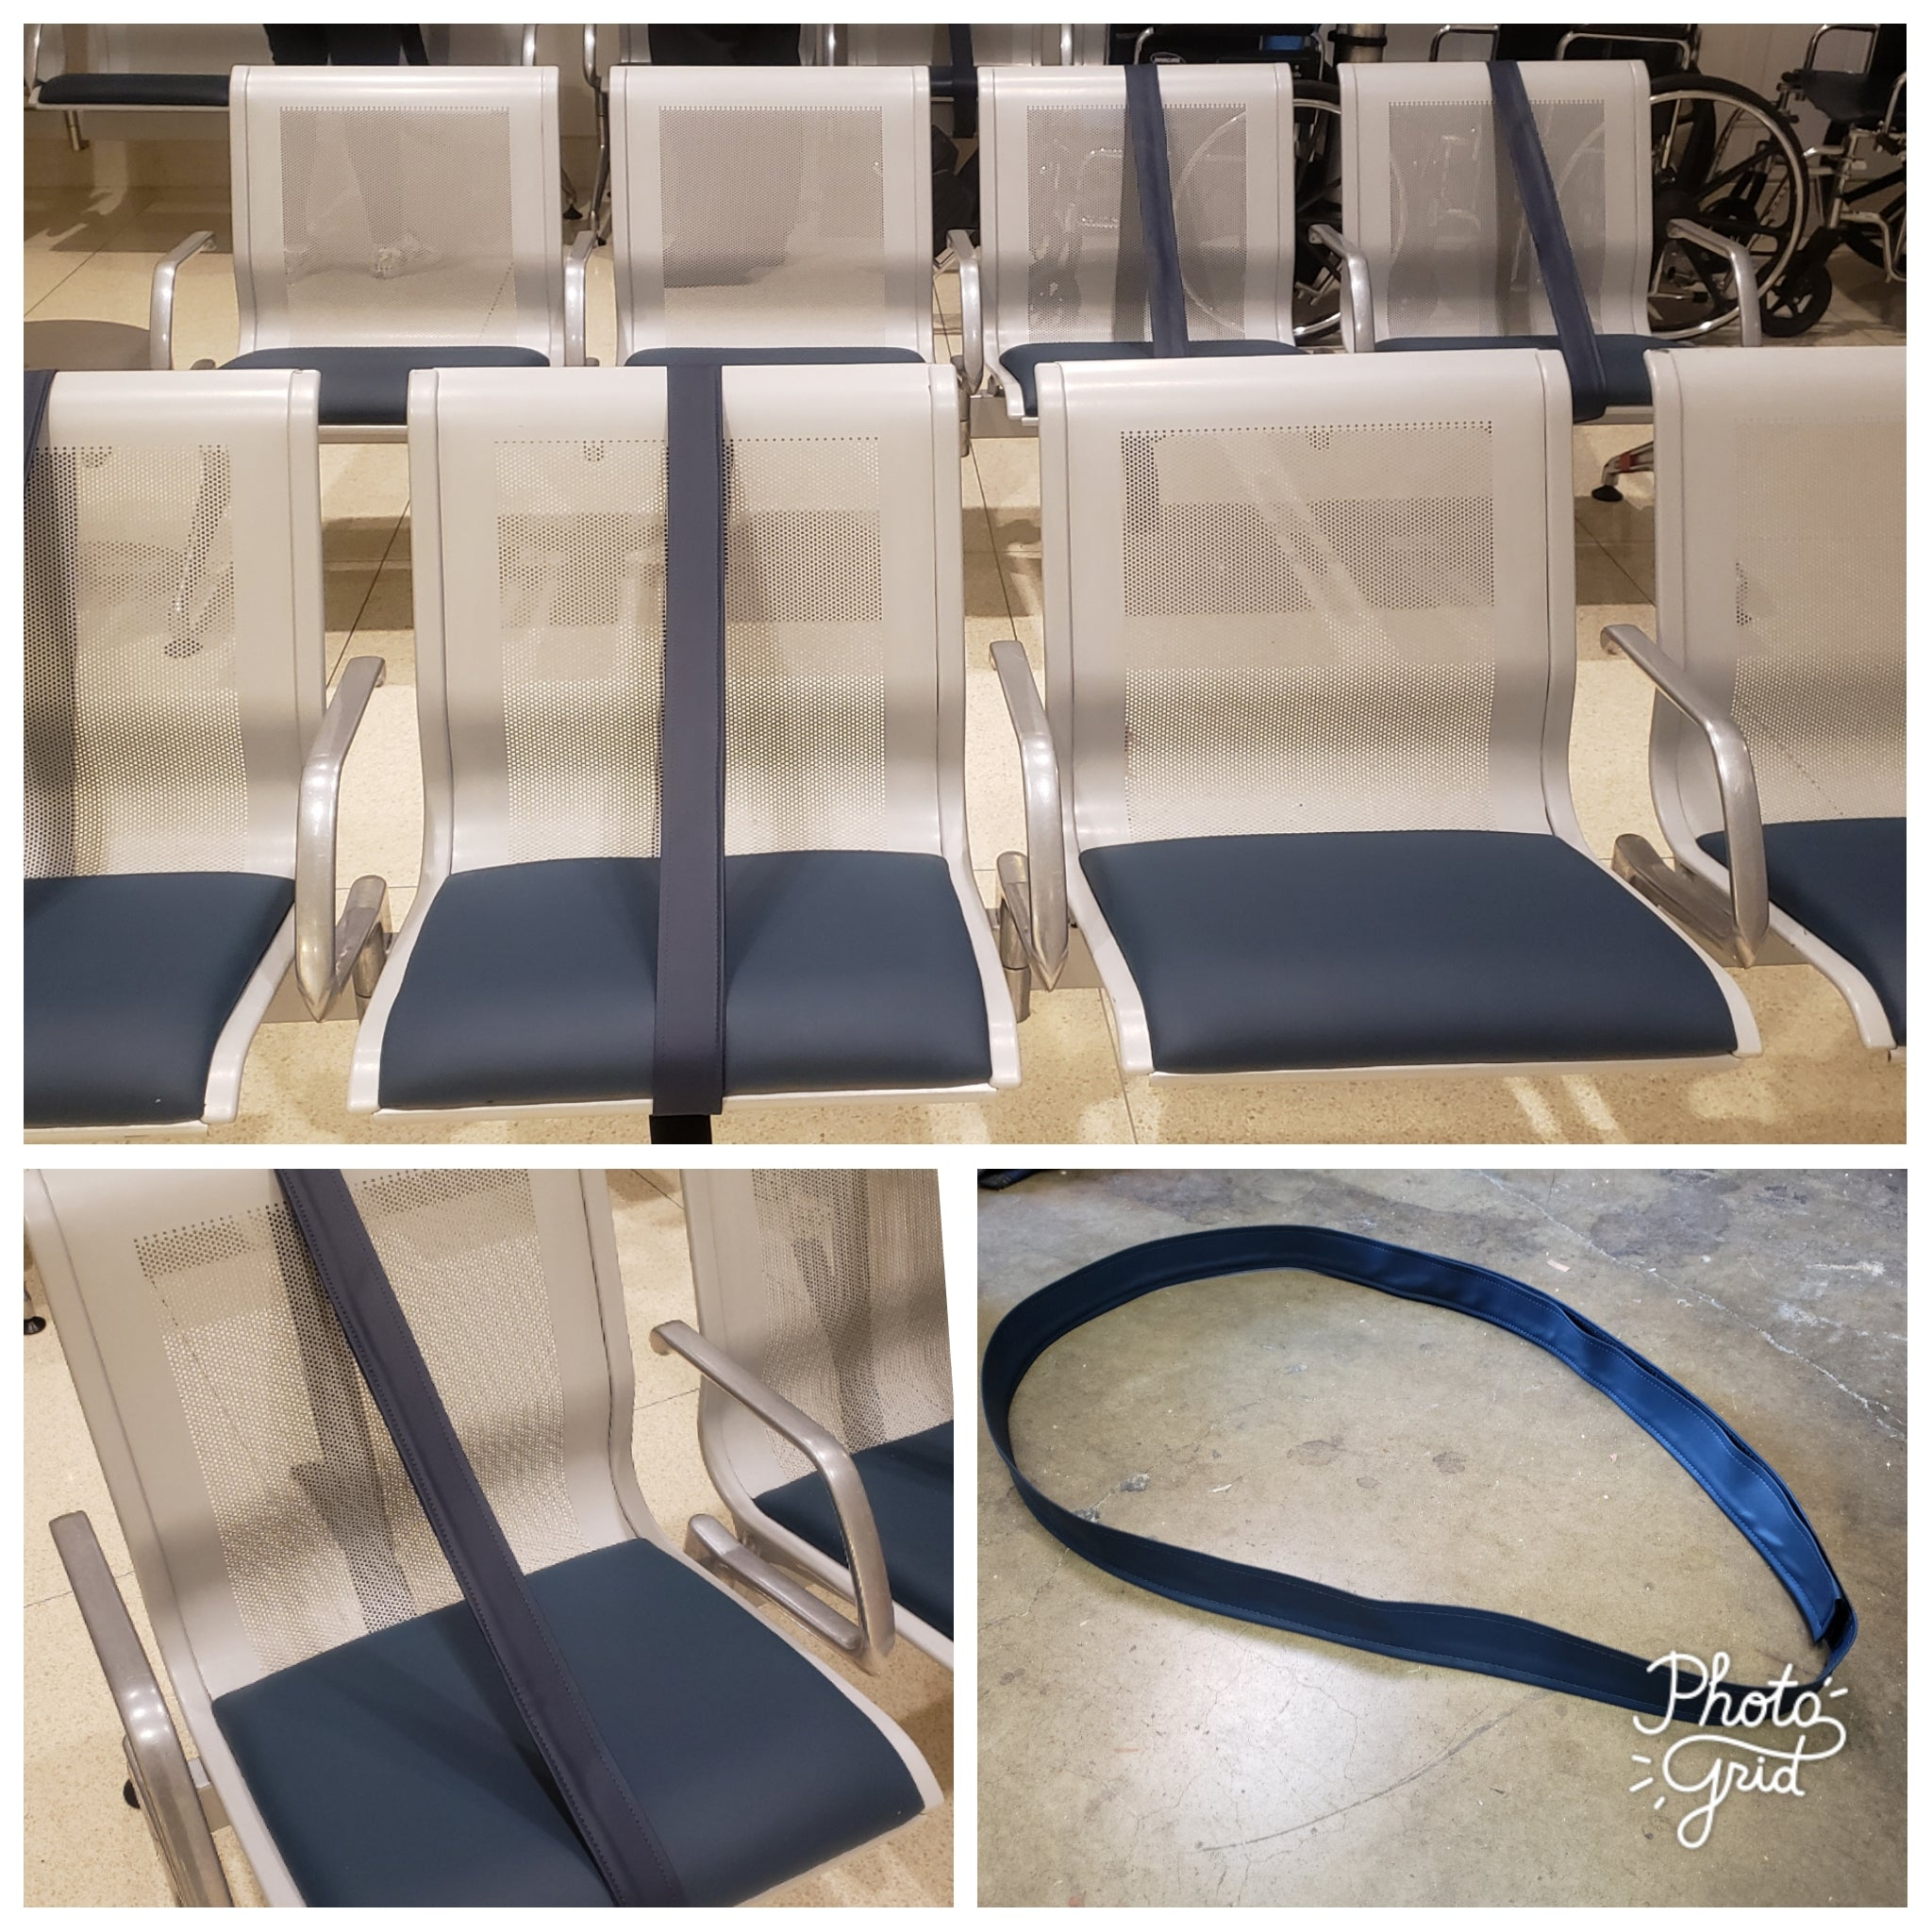 ADJUSTABLE VELCRO SEATING STRAPS